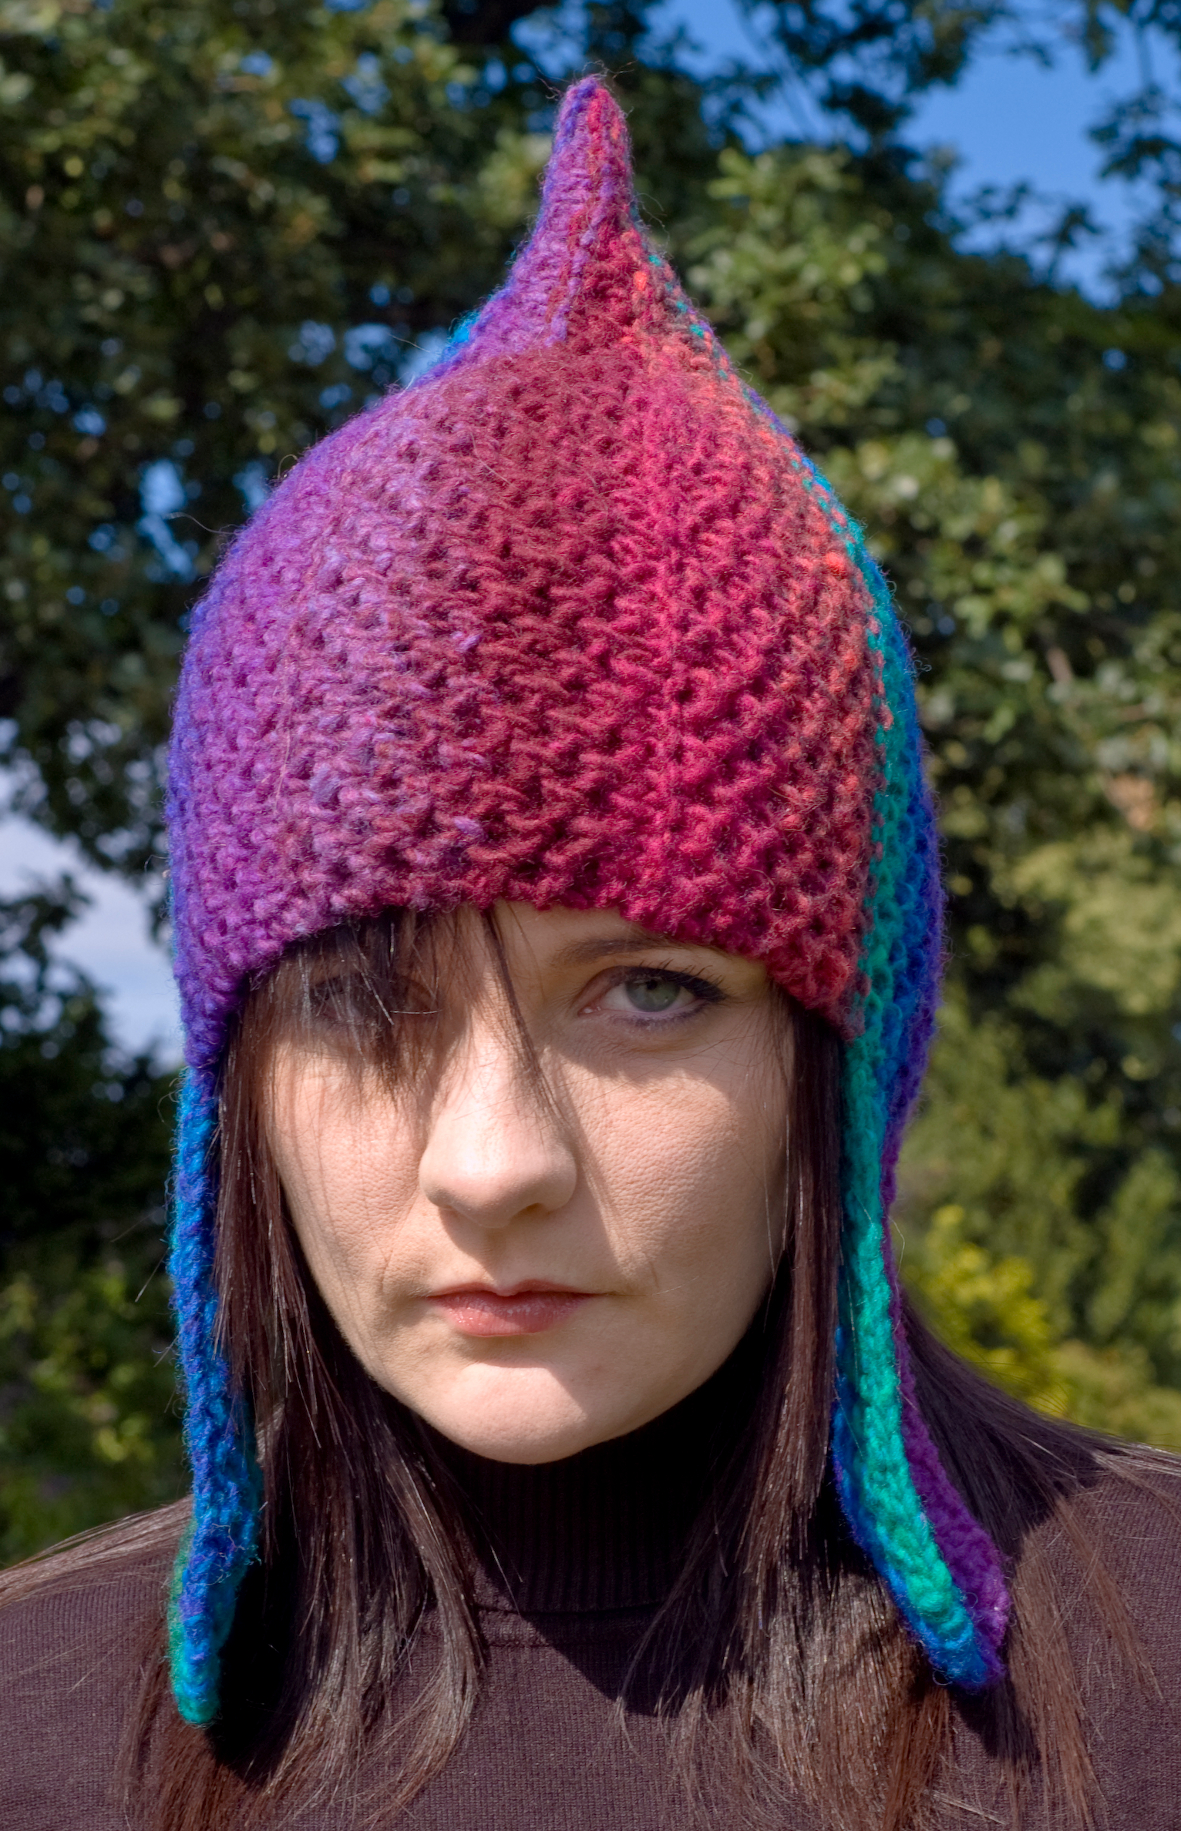 Rainbow Warrior chullo pixie Hat knitting pattern